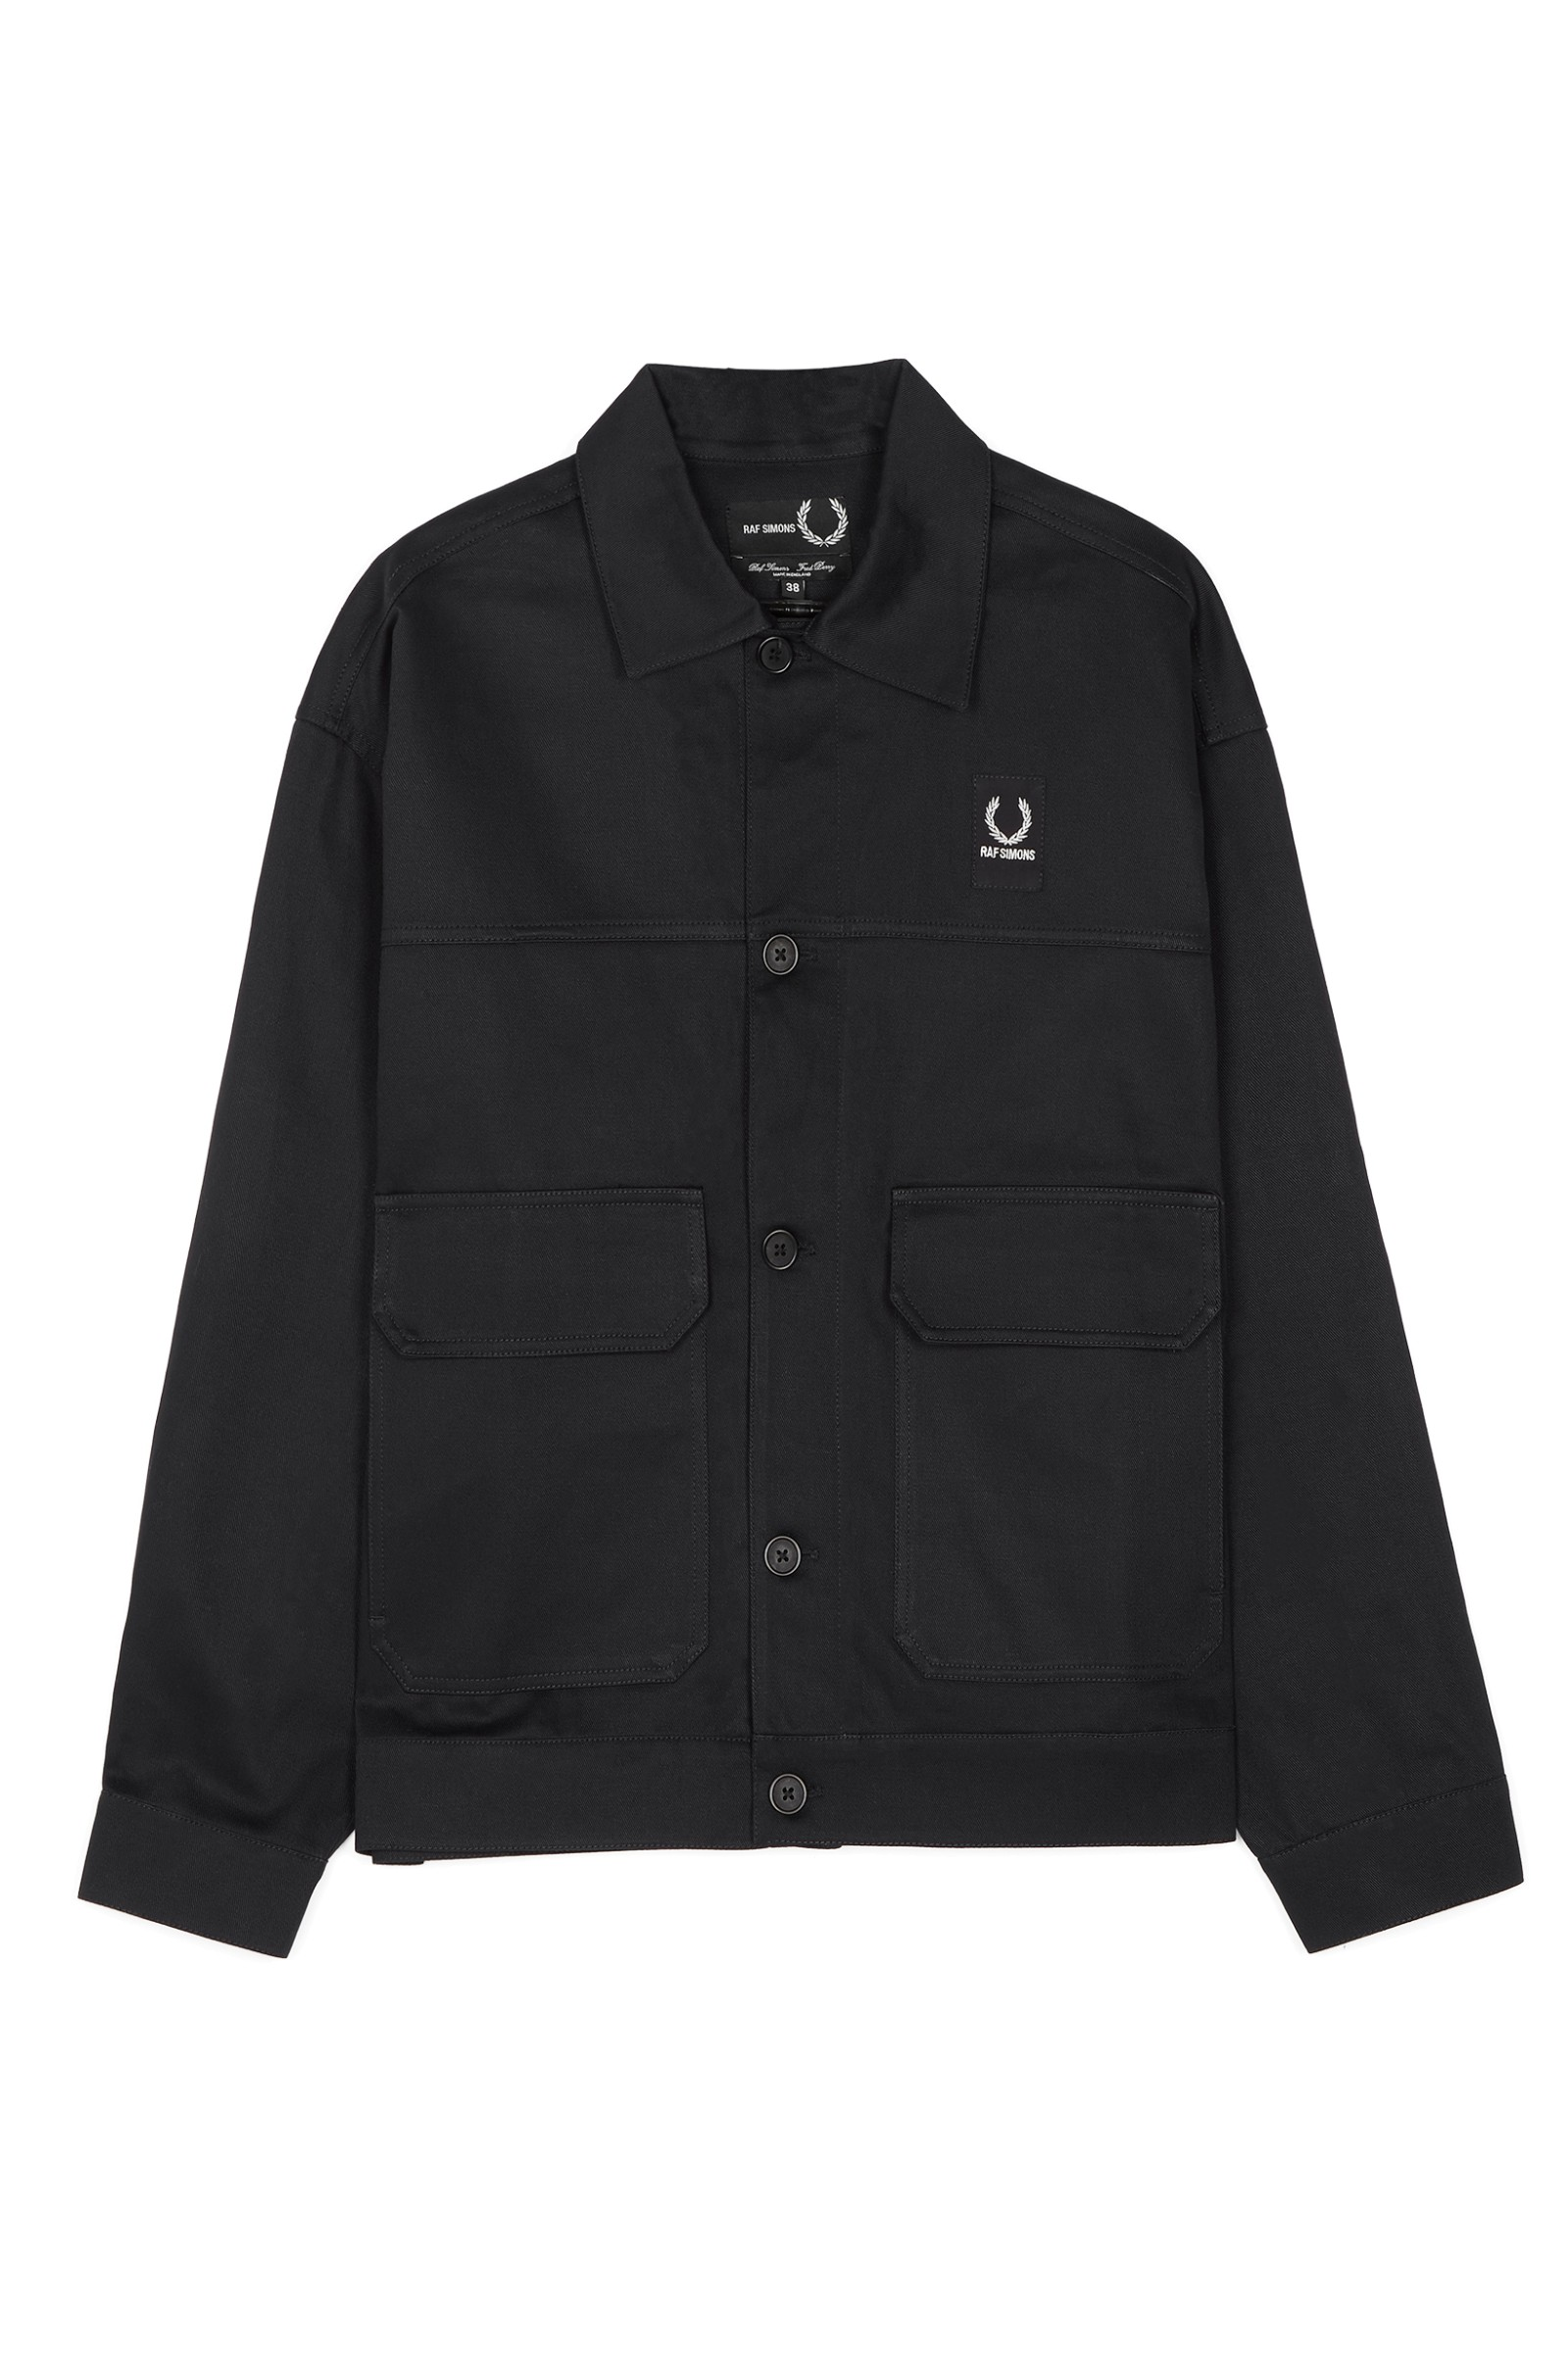 Raf Simons Made In England Taped Detail Jacket